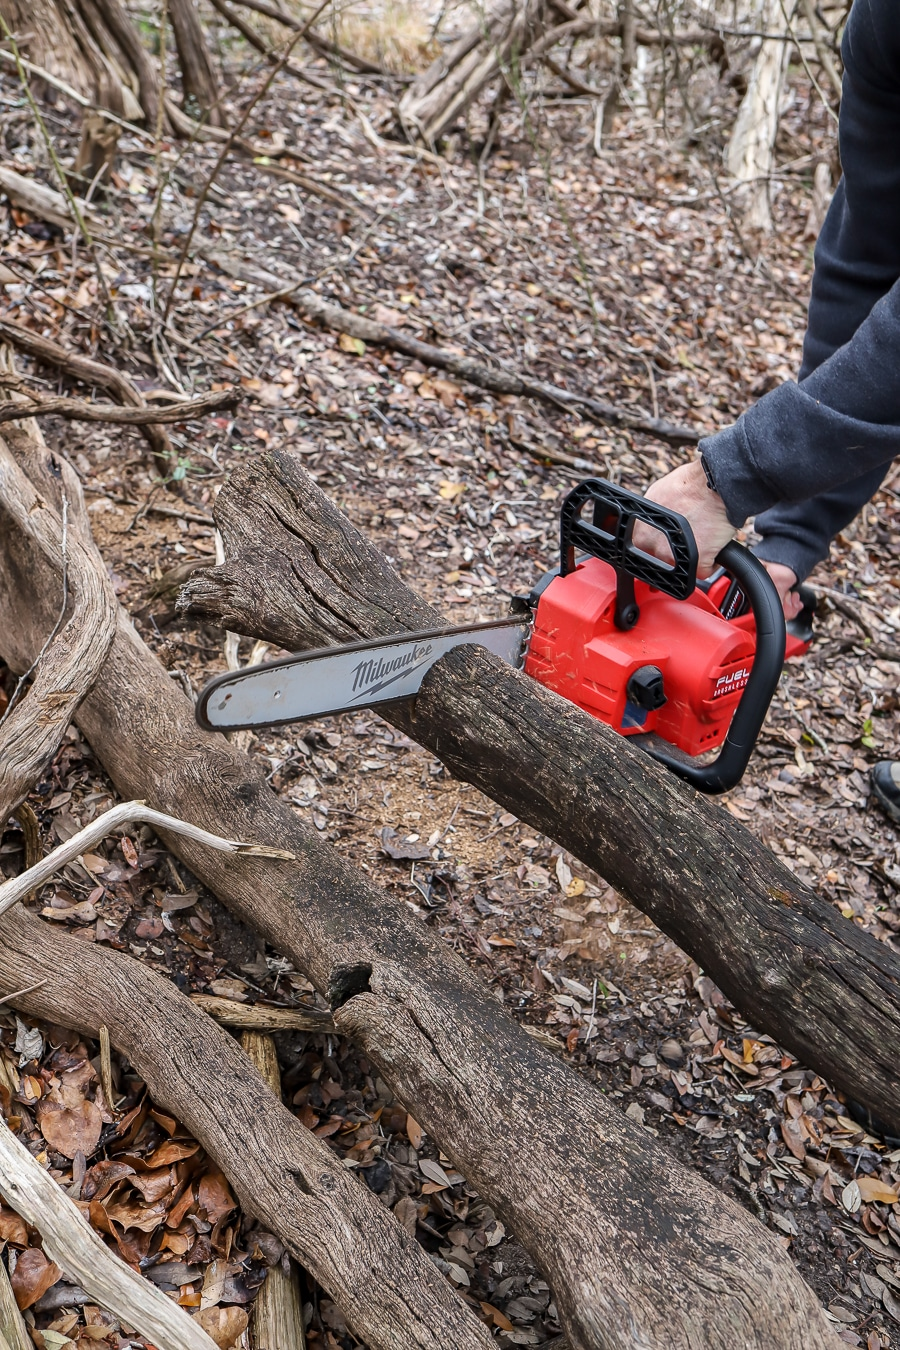 Tool Review of Milwaukee Cordless Chainsaw